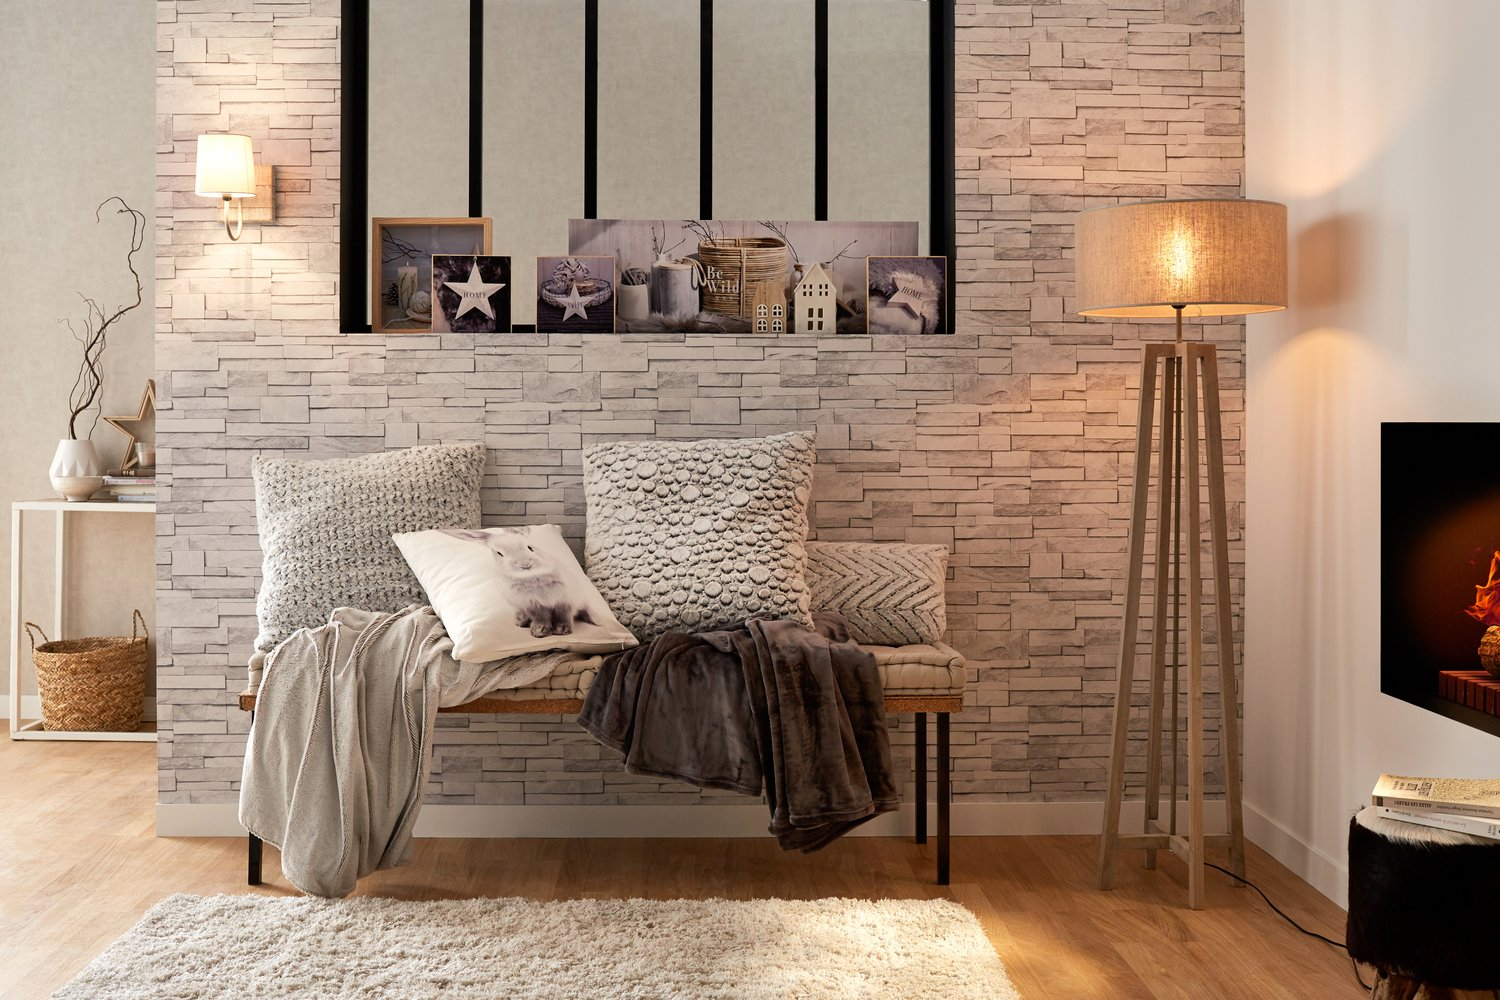 ambiance cocooning dans le salon leroy merlin. Black Bedroom Furniture Sets. Home Design Ideas